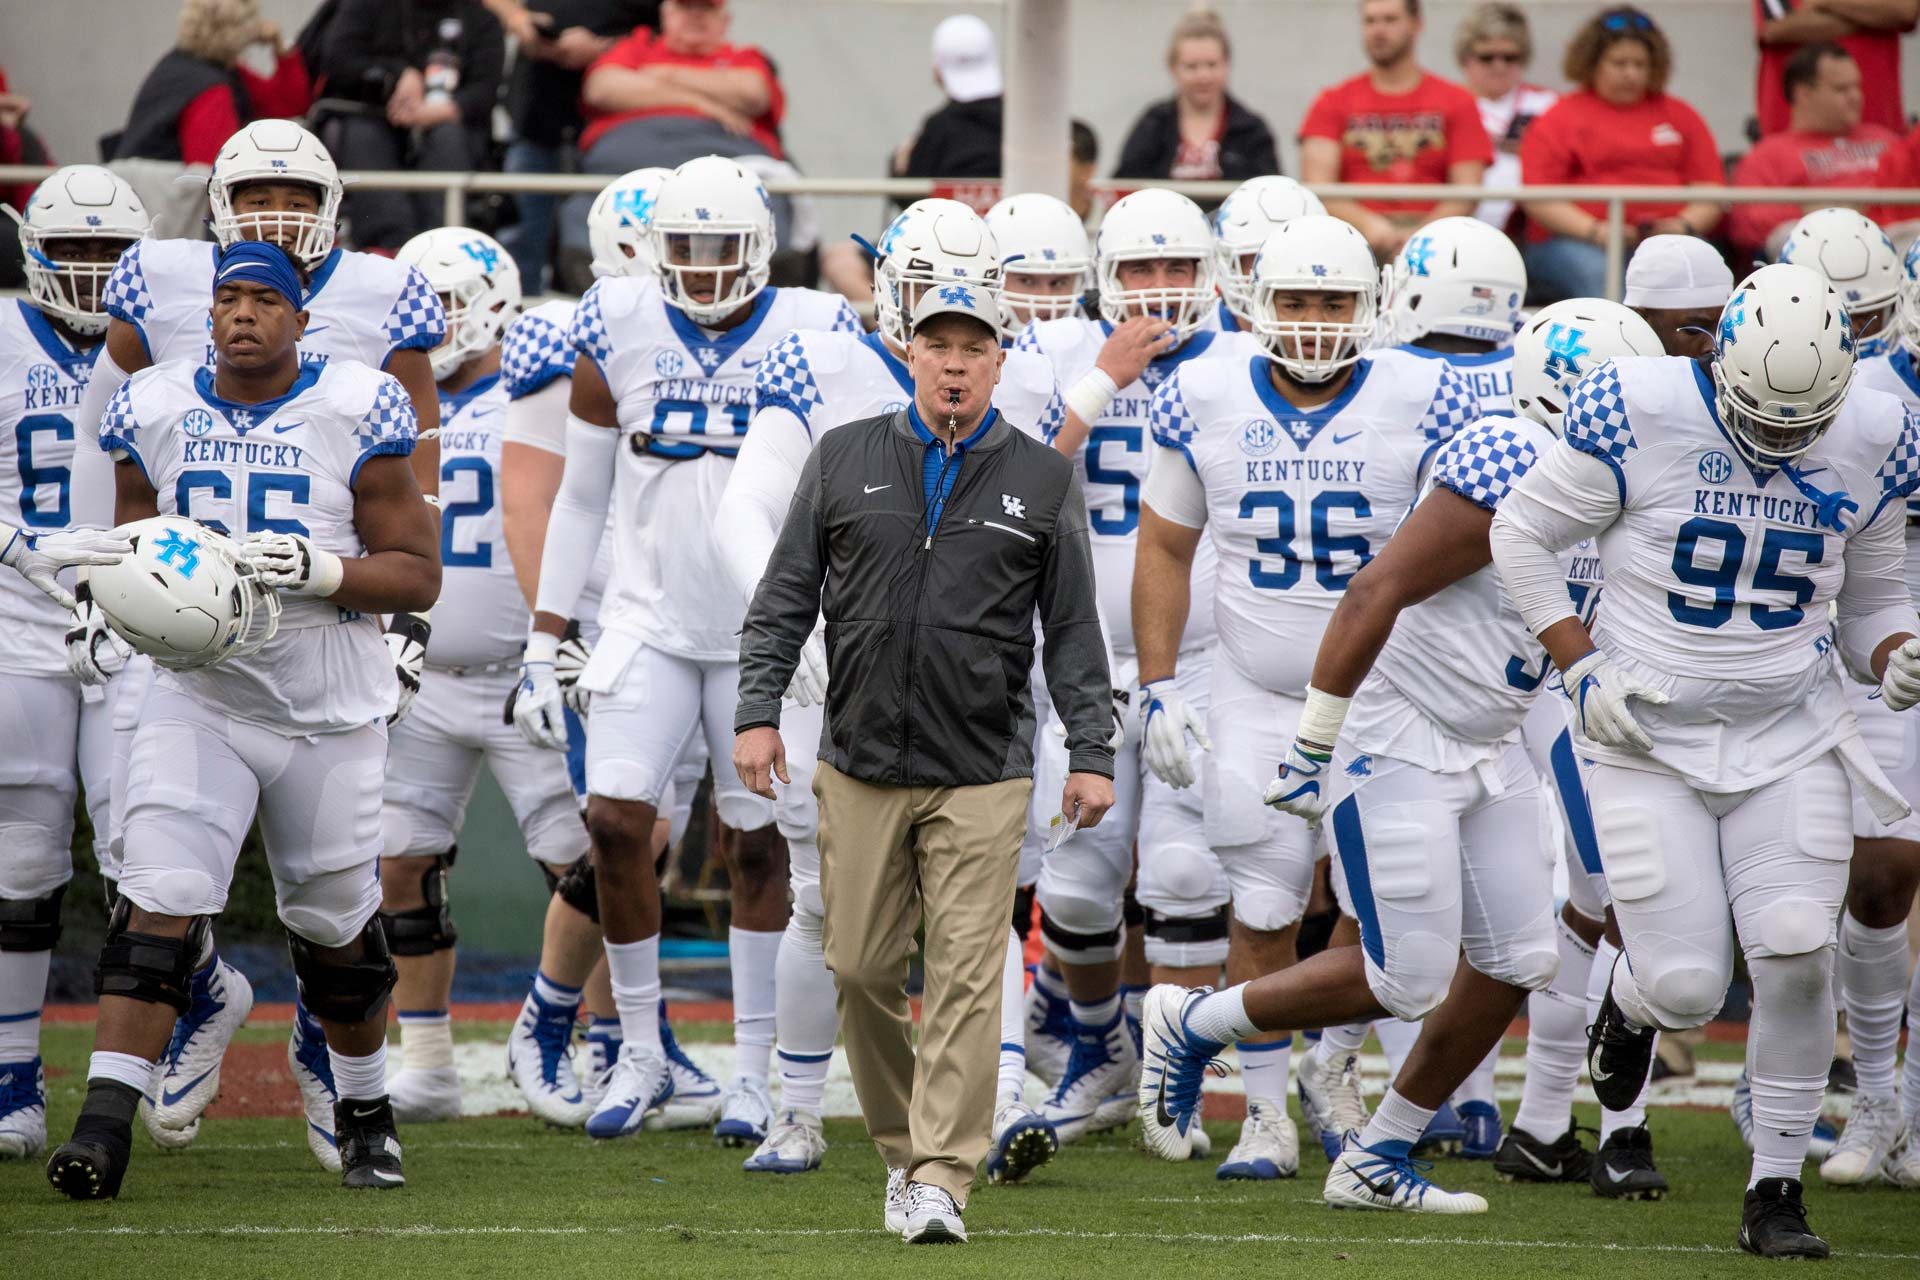 Coach stoops, wearing a gray jacket, leads a team of Kentucky football players onto the field. He has a whistle in his mouth and is wearing a UK baseball cap.